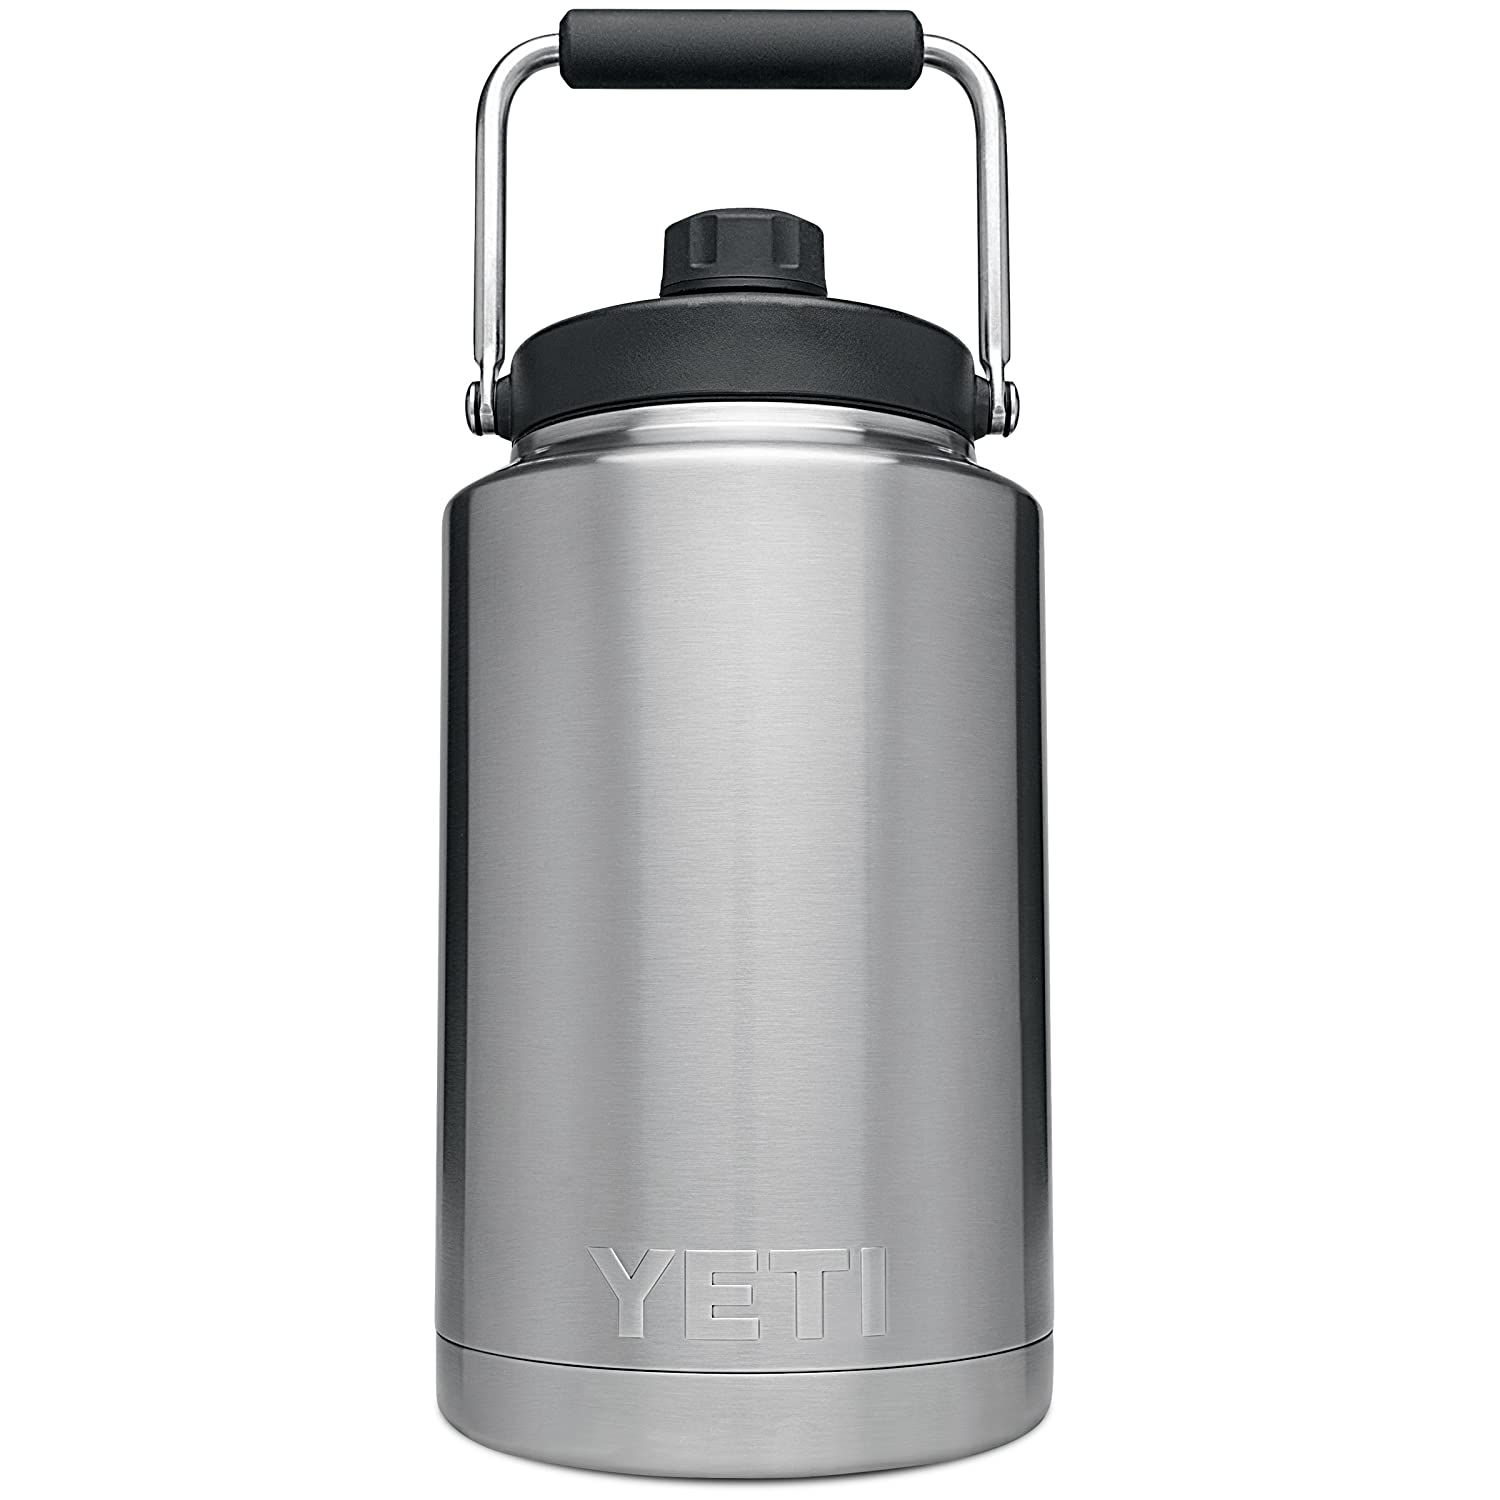 YETI Rambler Vacuum Insulated Stainless Steel Gallon Jug with MagCap